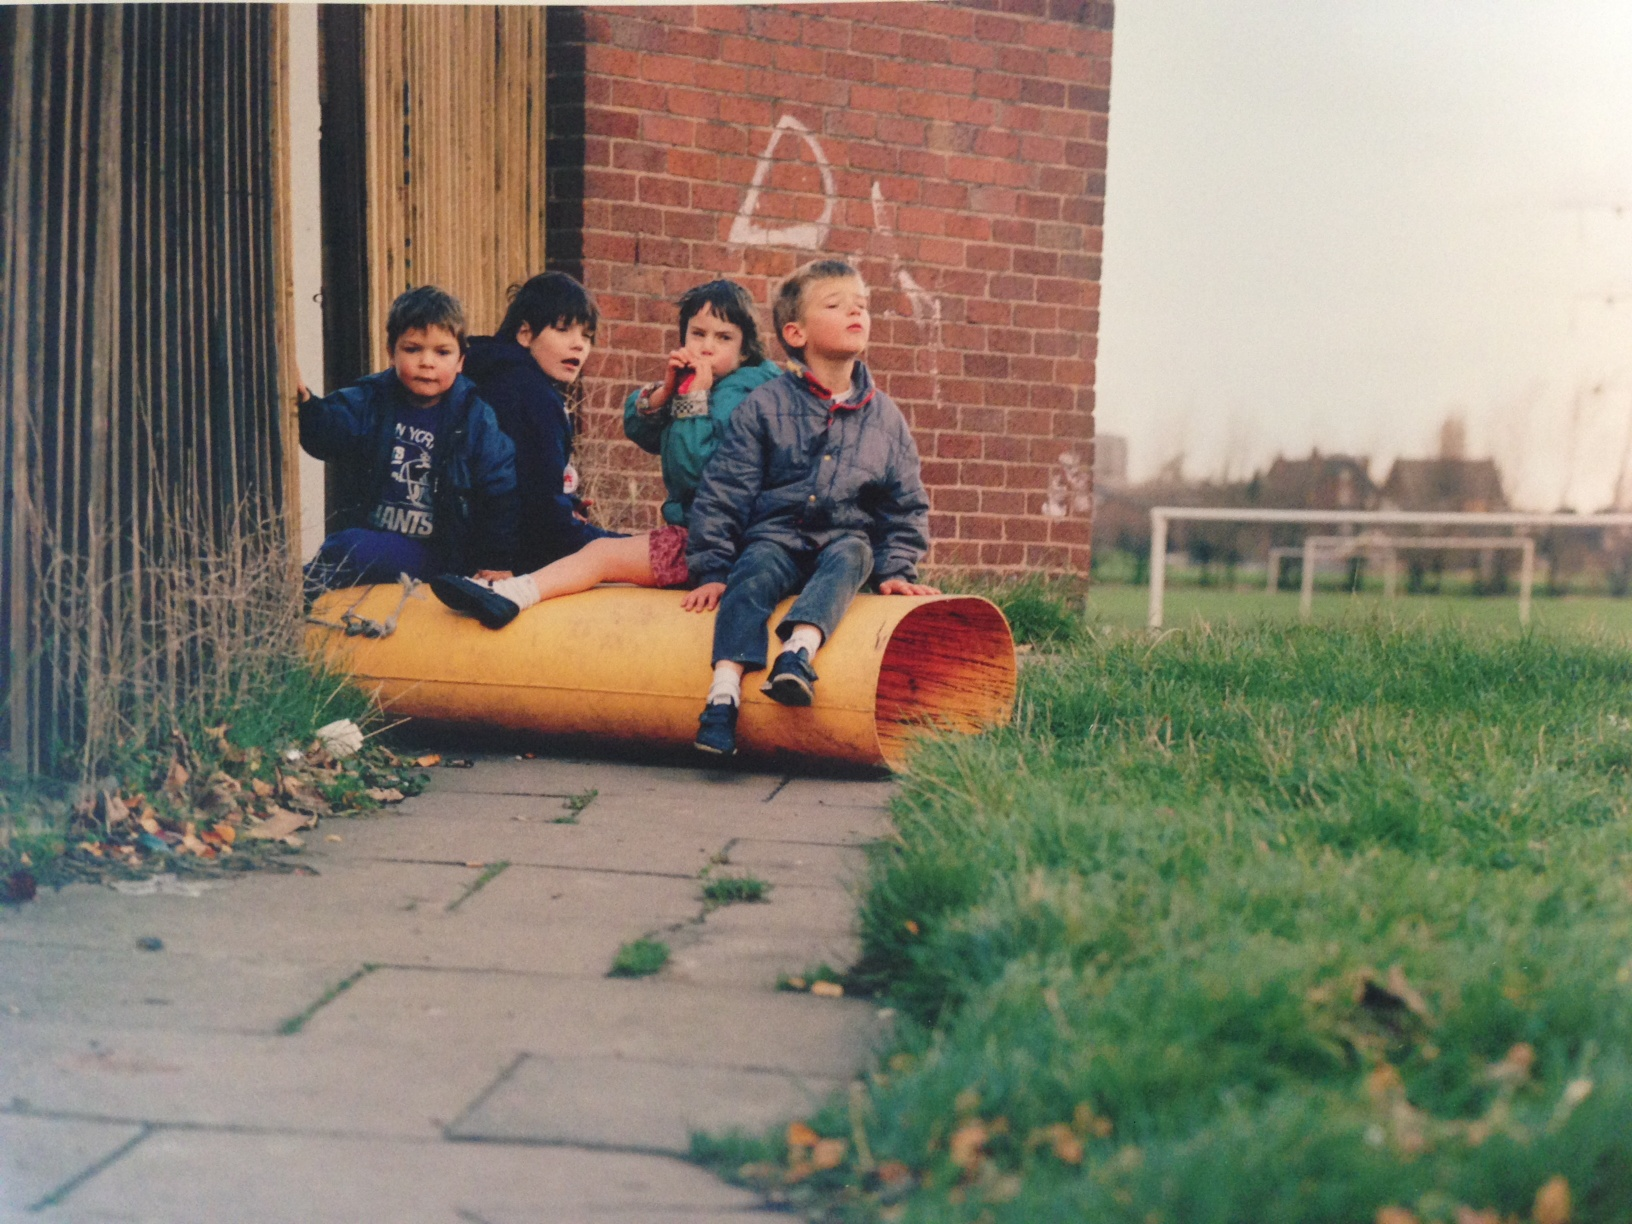 Children, Back Gate   Small: Edition of 10 + 1 A/P - Price from £600  Large: Edition of 5 + 2 A/P - Price from £1,500   C-type print